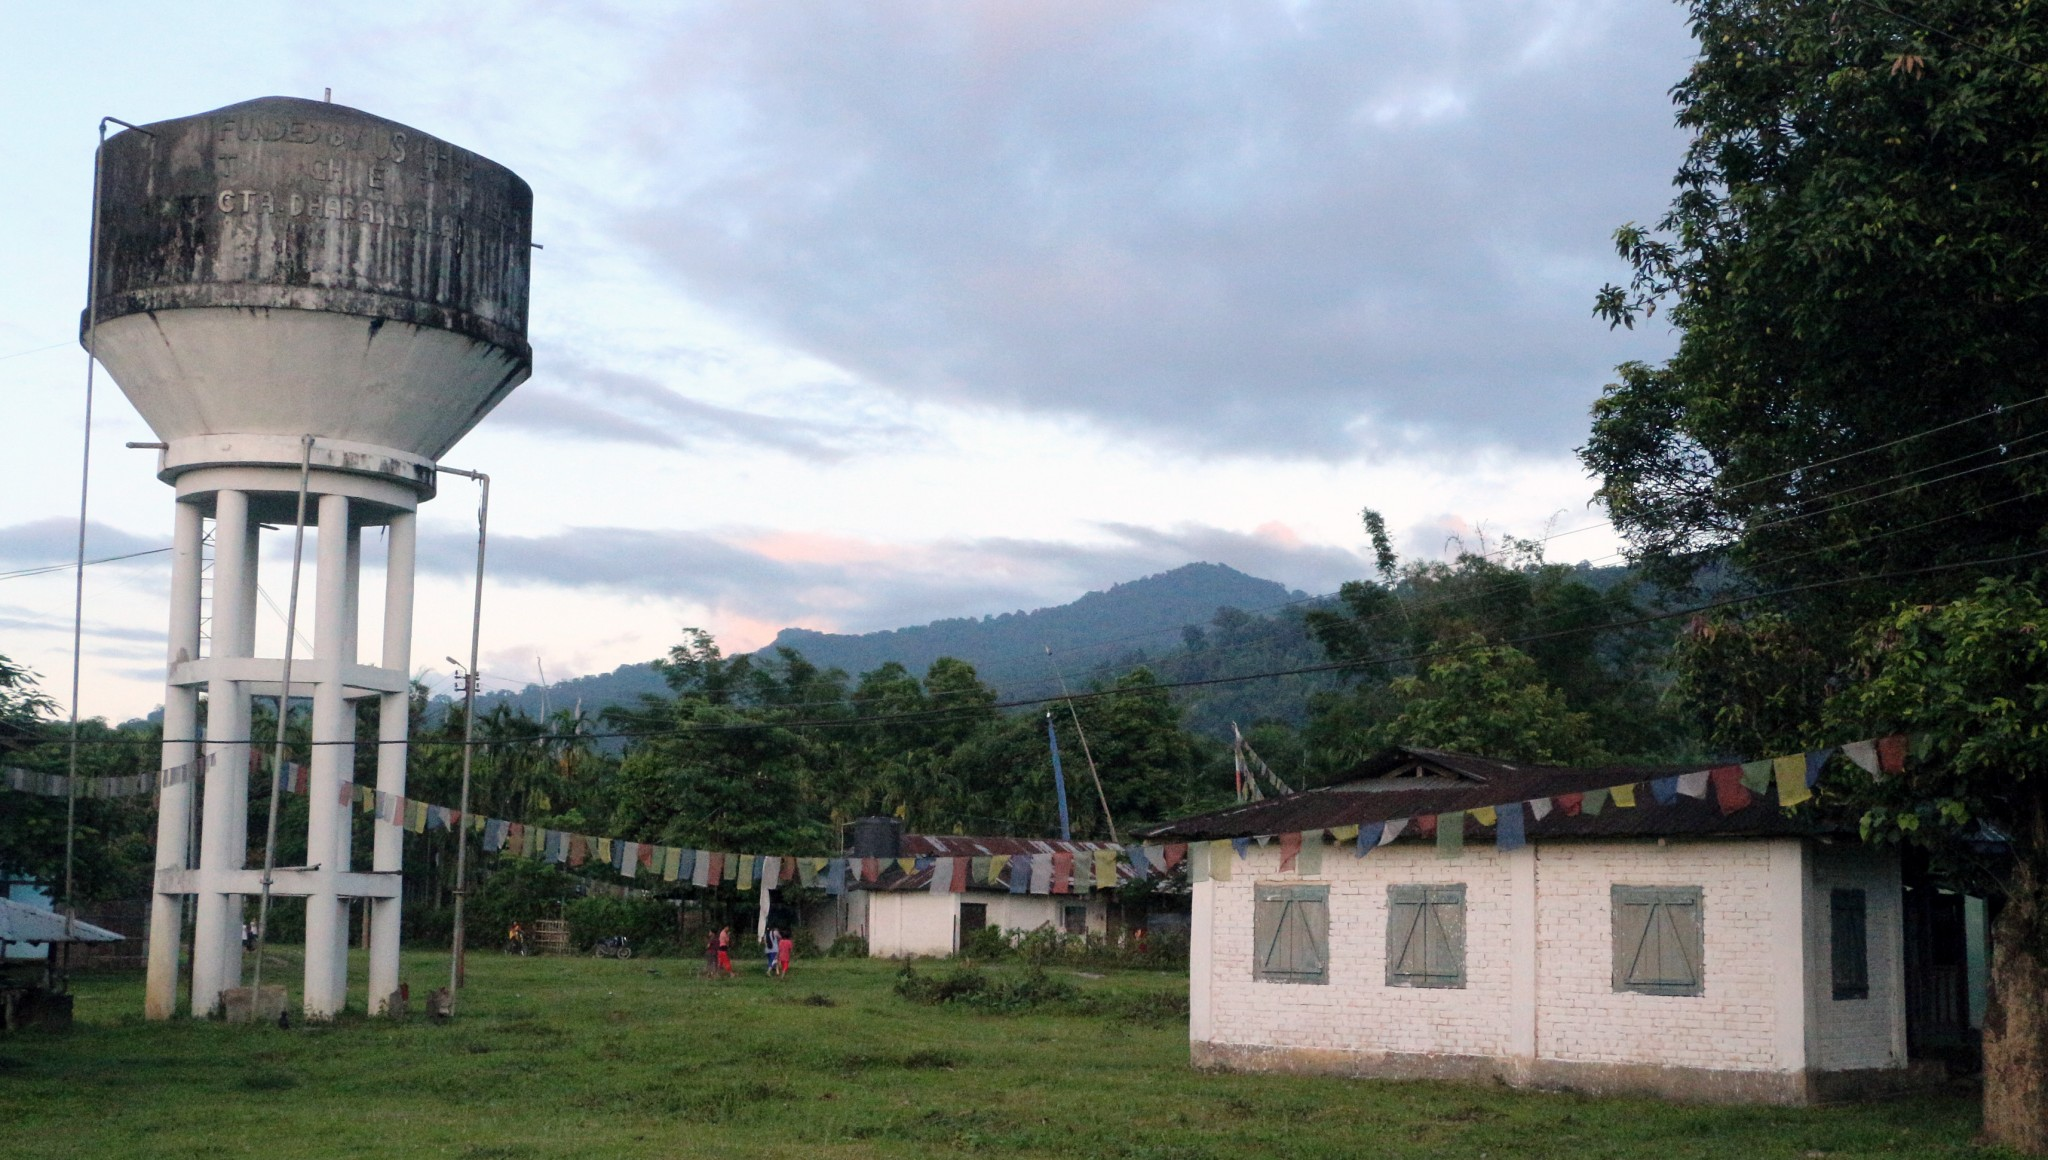 One of the water towers in Miao settlement.